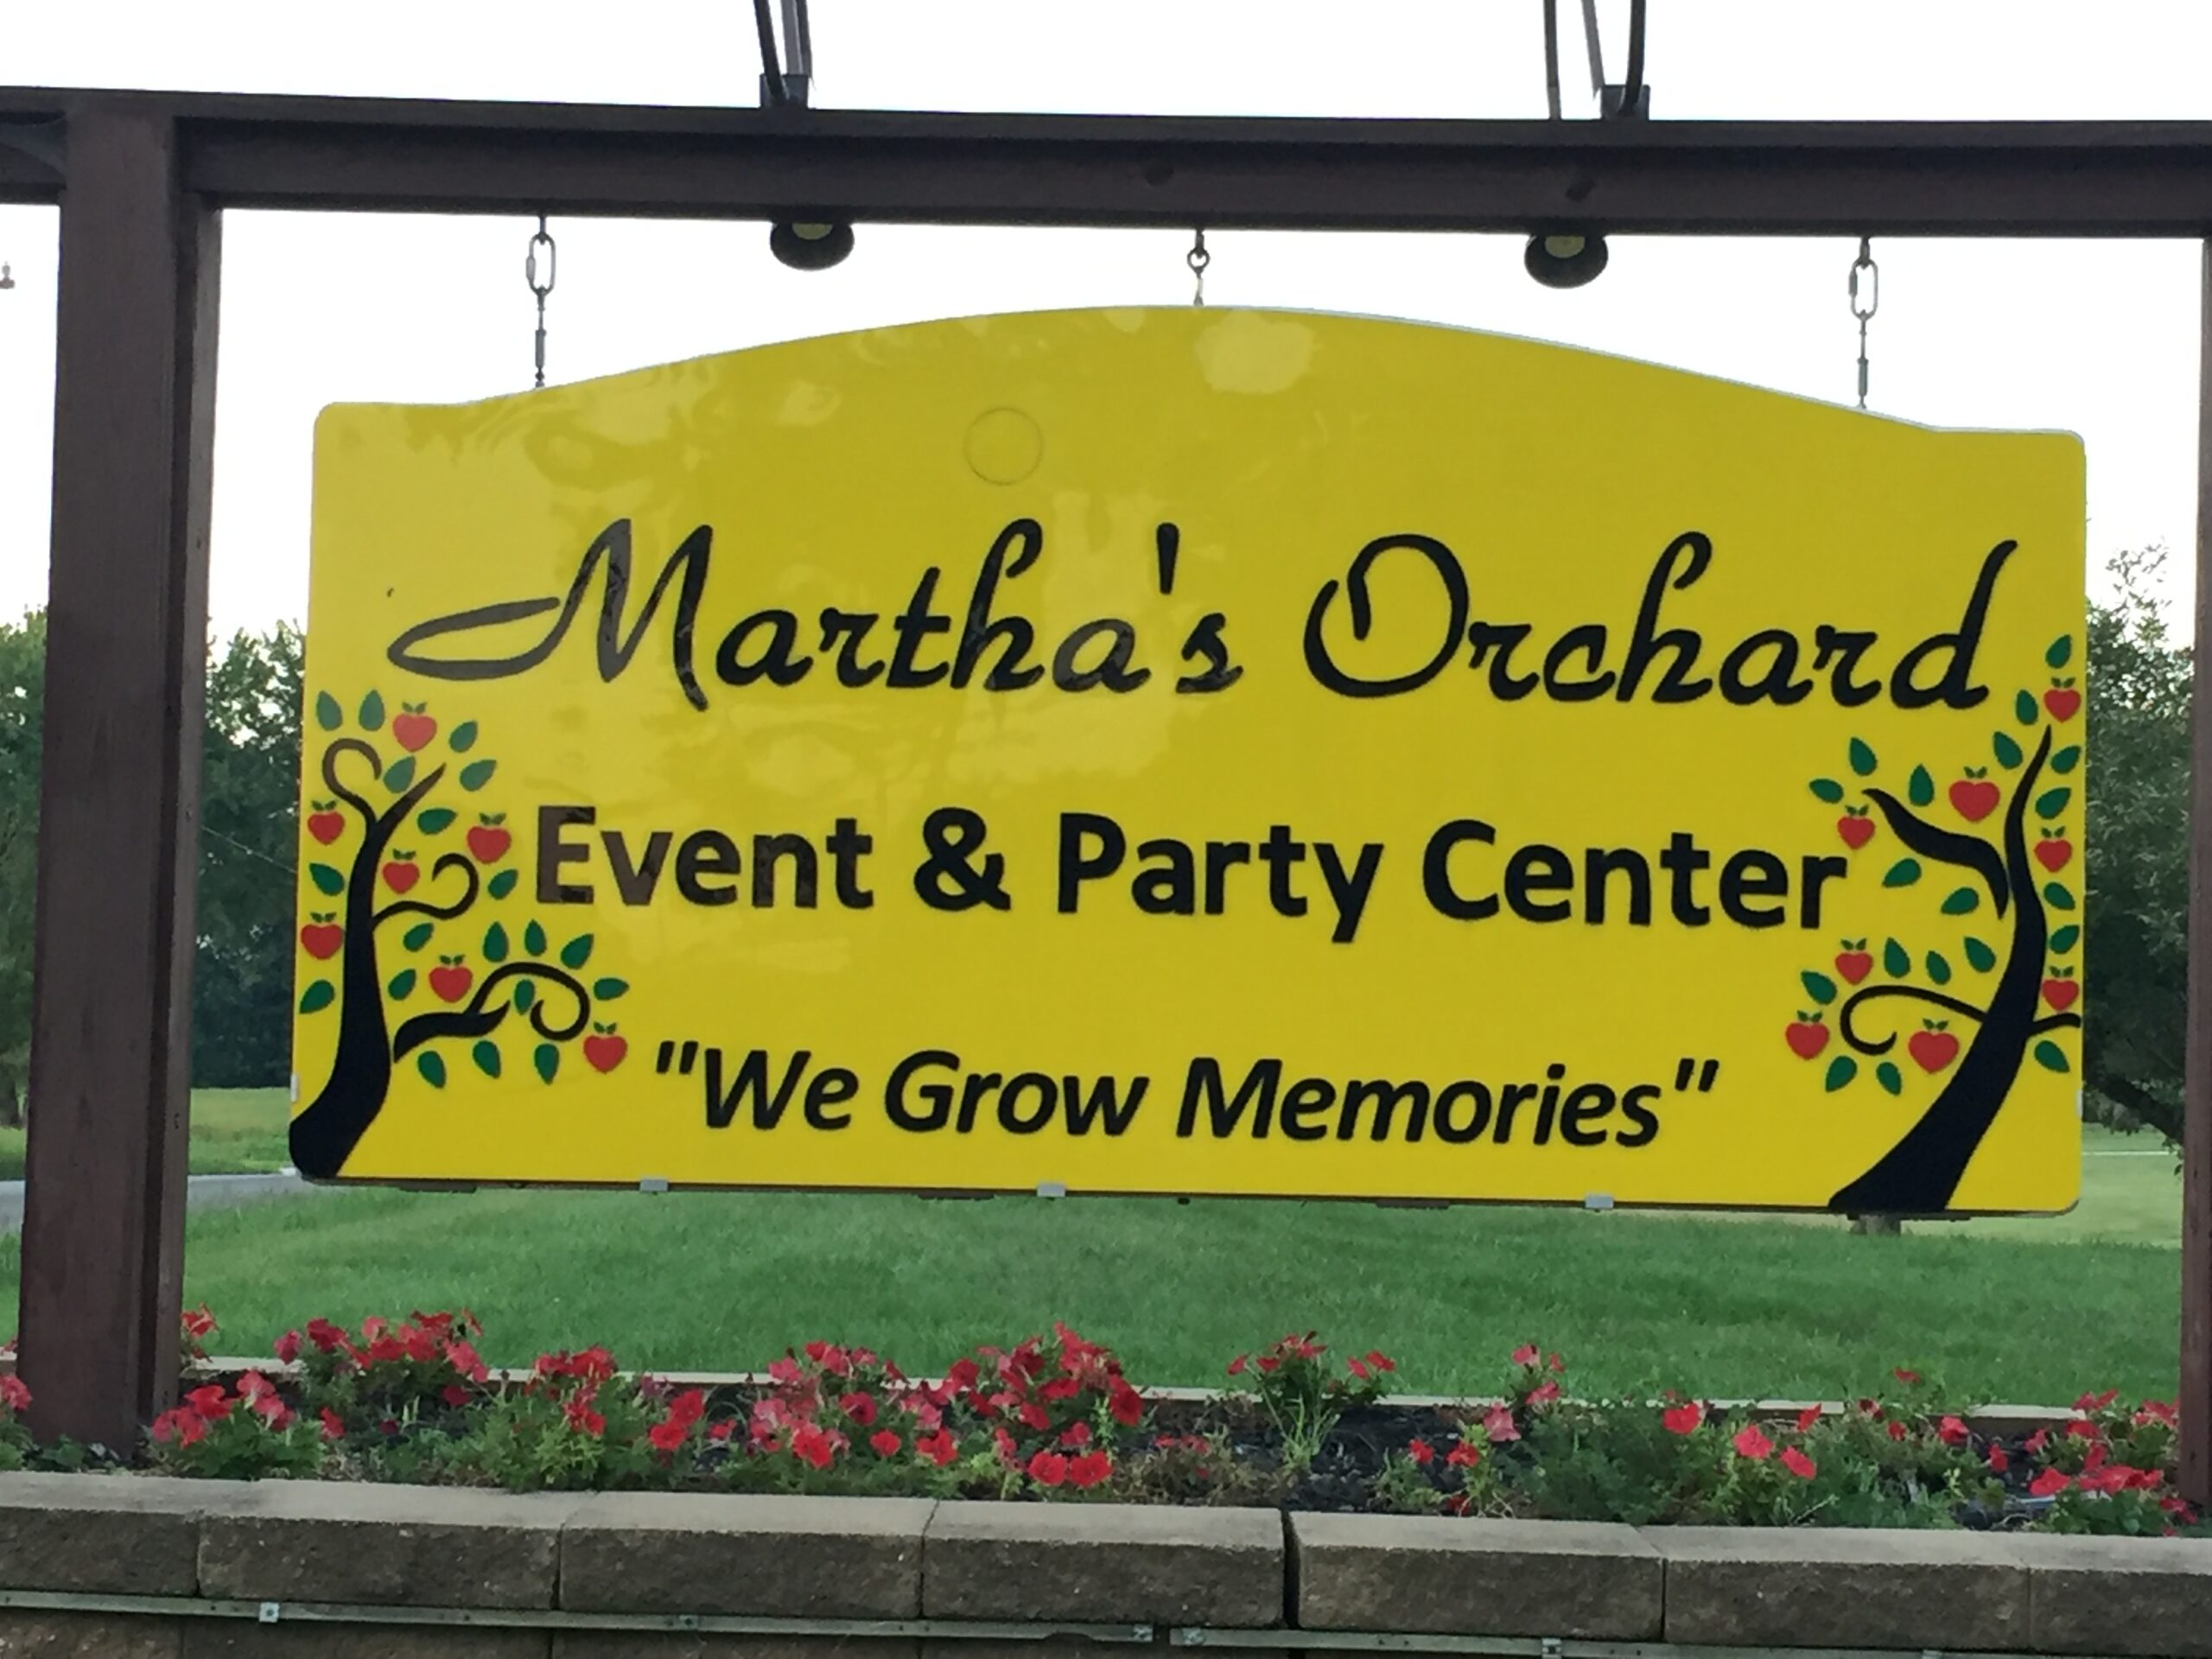 Central Indiana's largest wedding barn Martha's Orchard